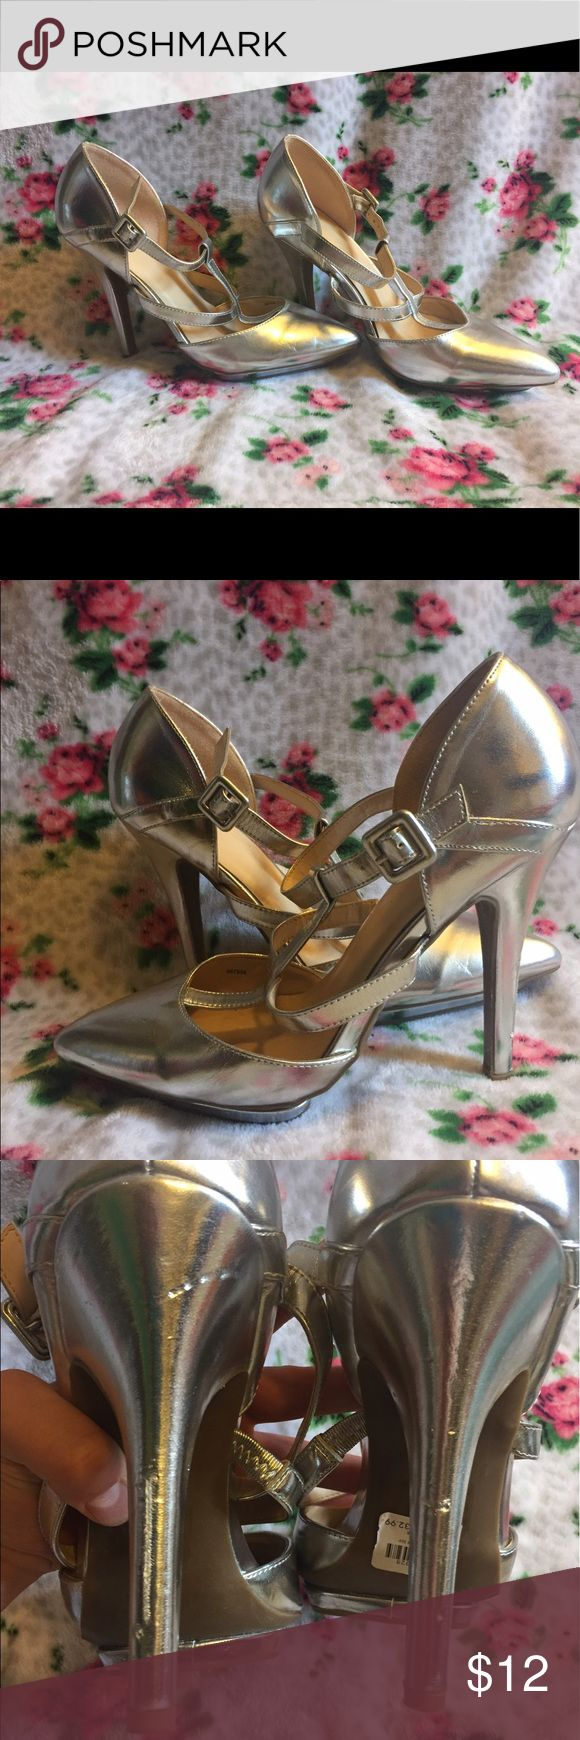 Silver Charlotte Russe Heels Size 9! Hello to all you heel lovers! I'm selling a pair of SILVER metallic looking Charlotte Russe heels, SIZE 9. They have some nicks and scratches(as seen in photos). I'm asking $12 obo:) Charlotte Russe Shoes Heels